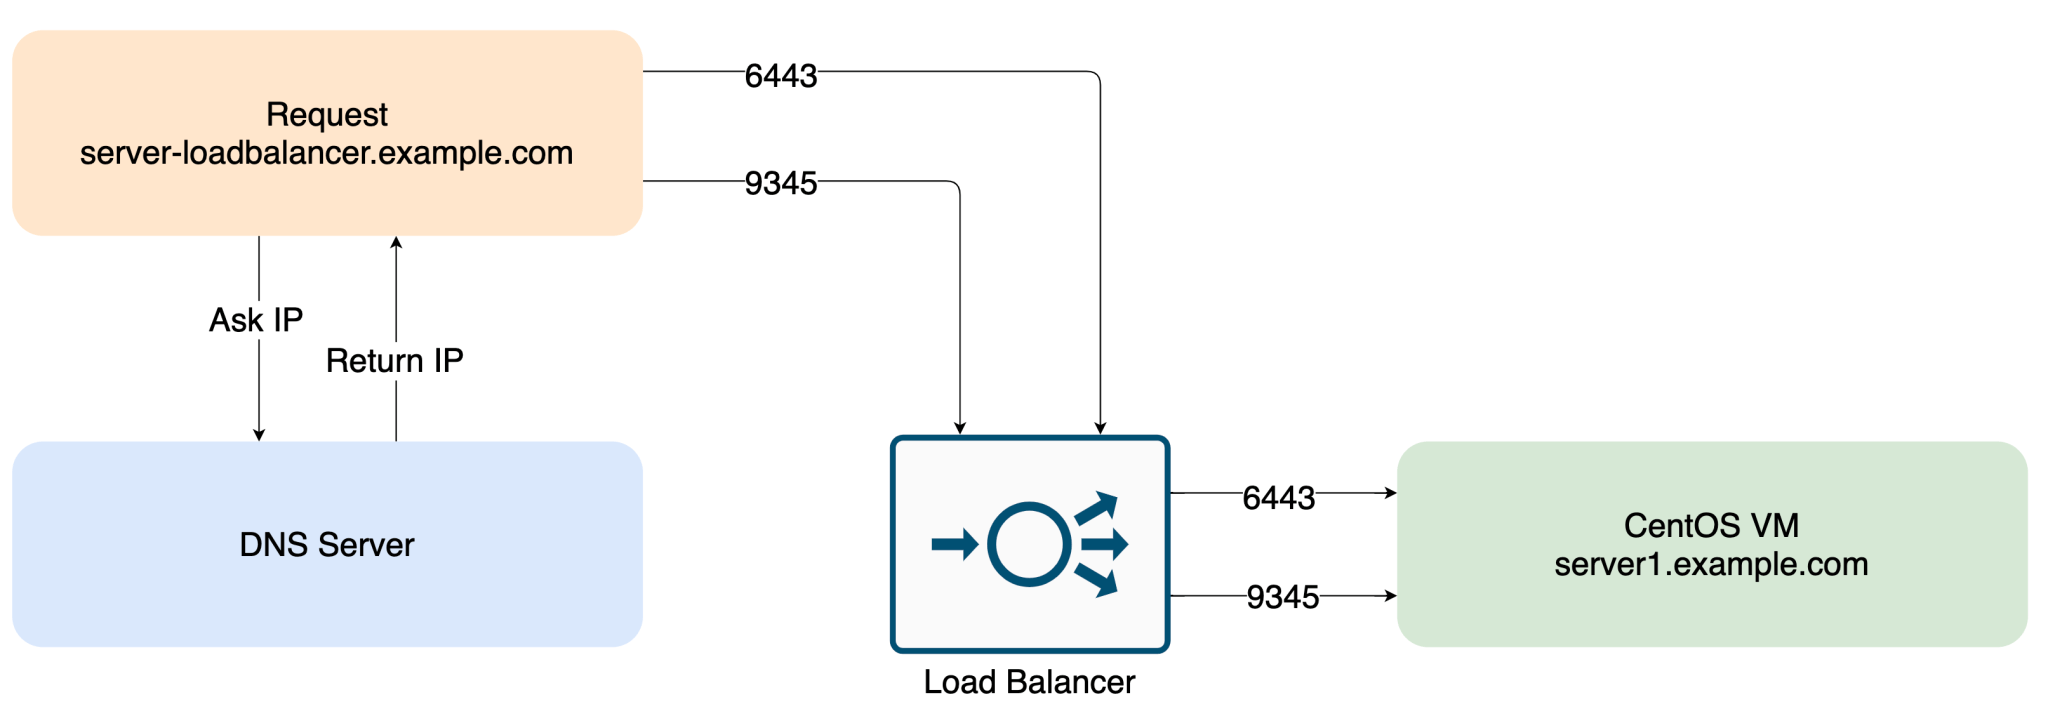 Setting up the load balancer in front of the first server node